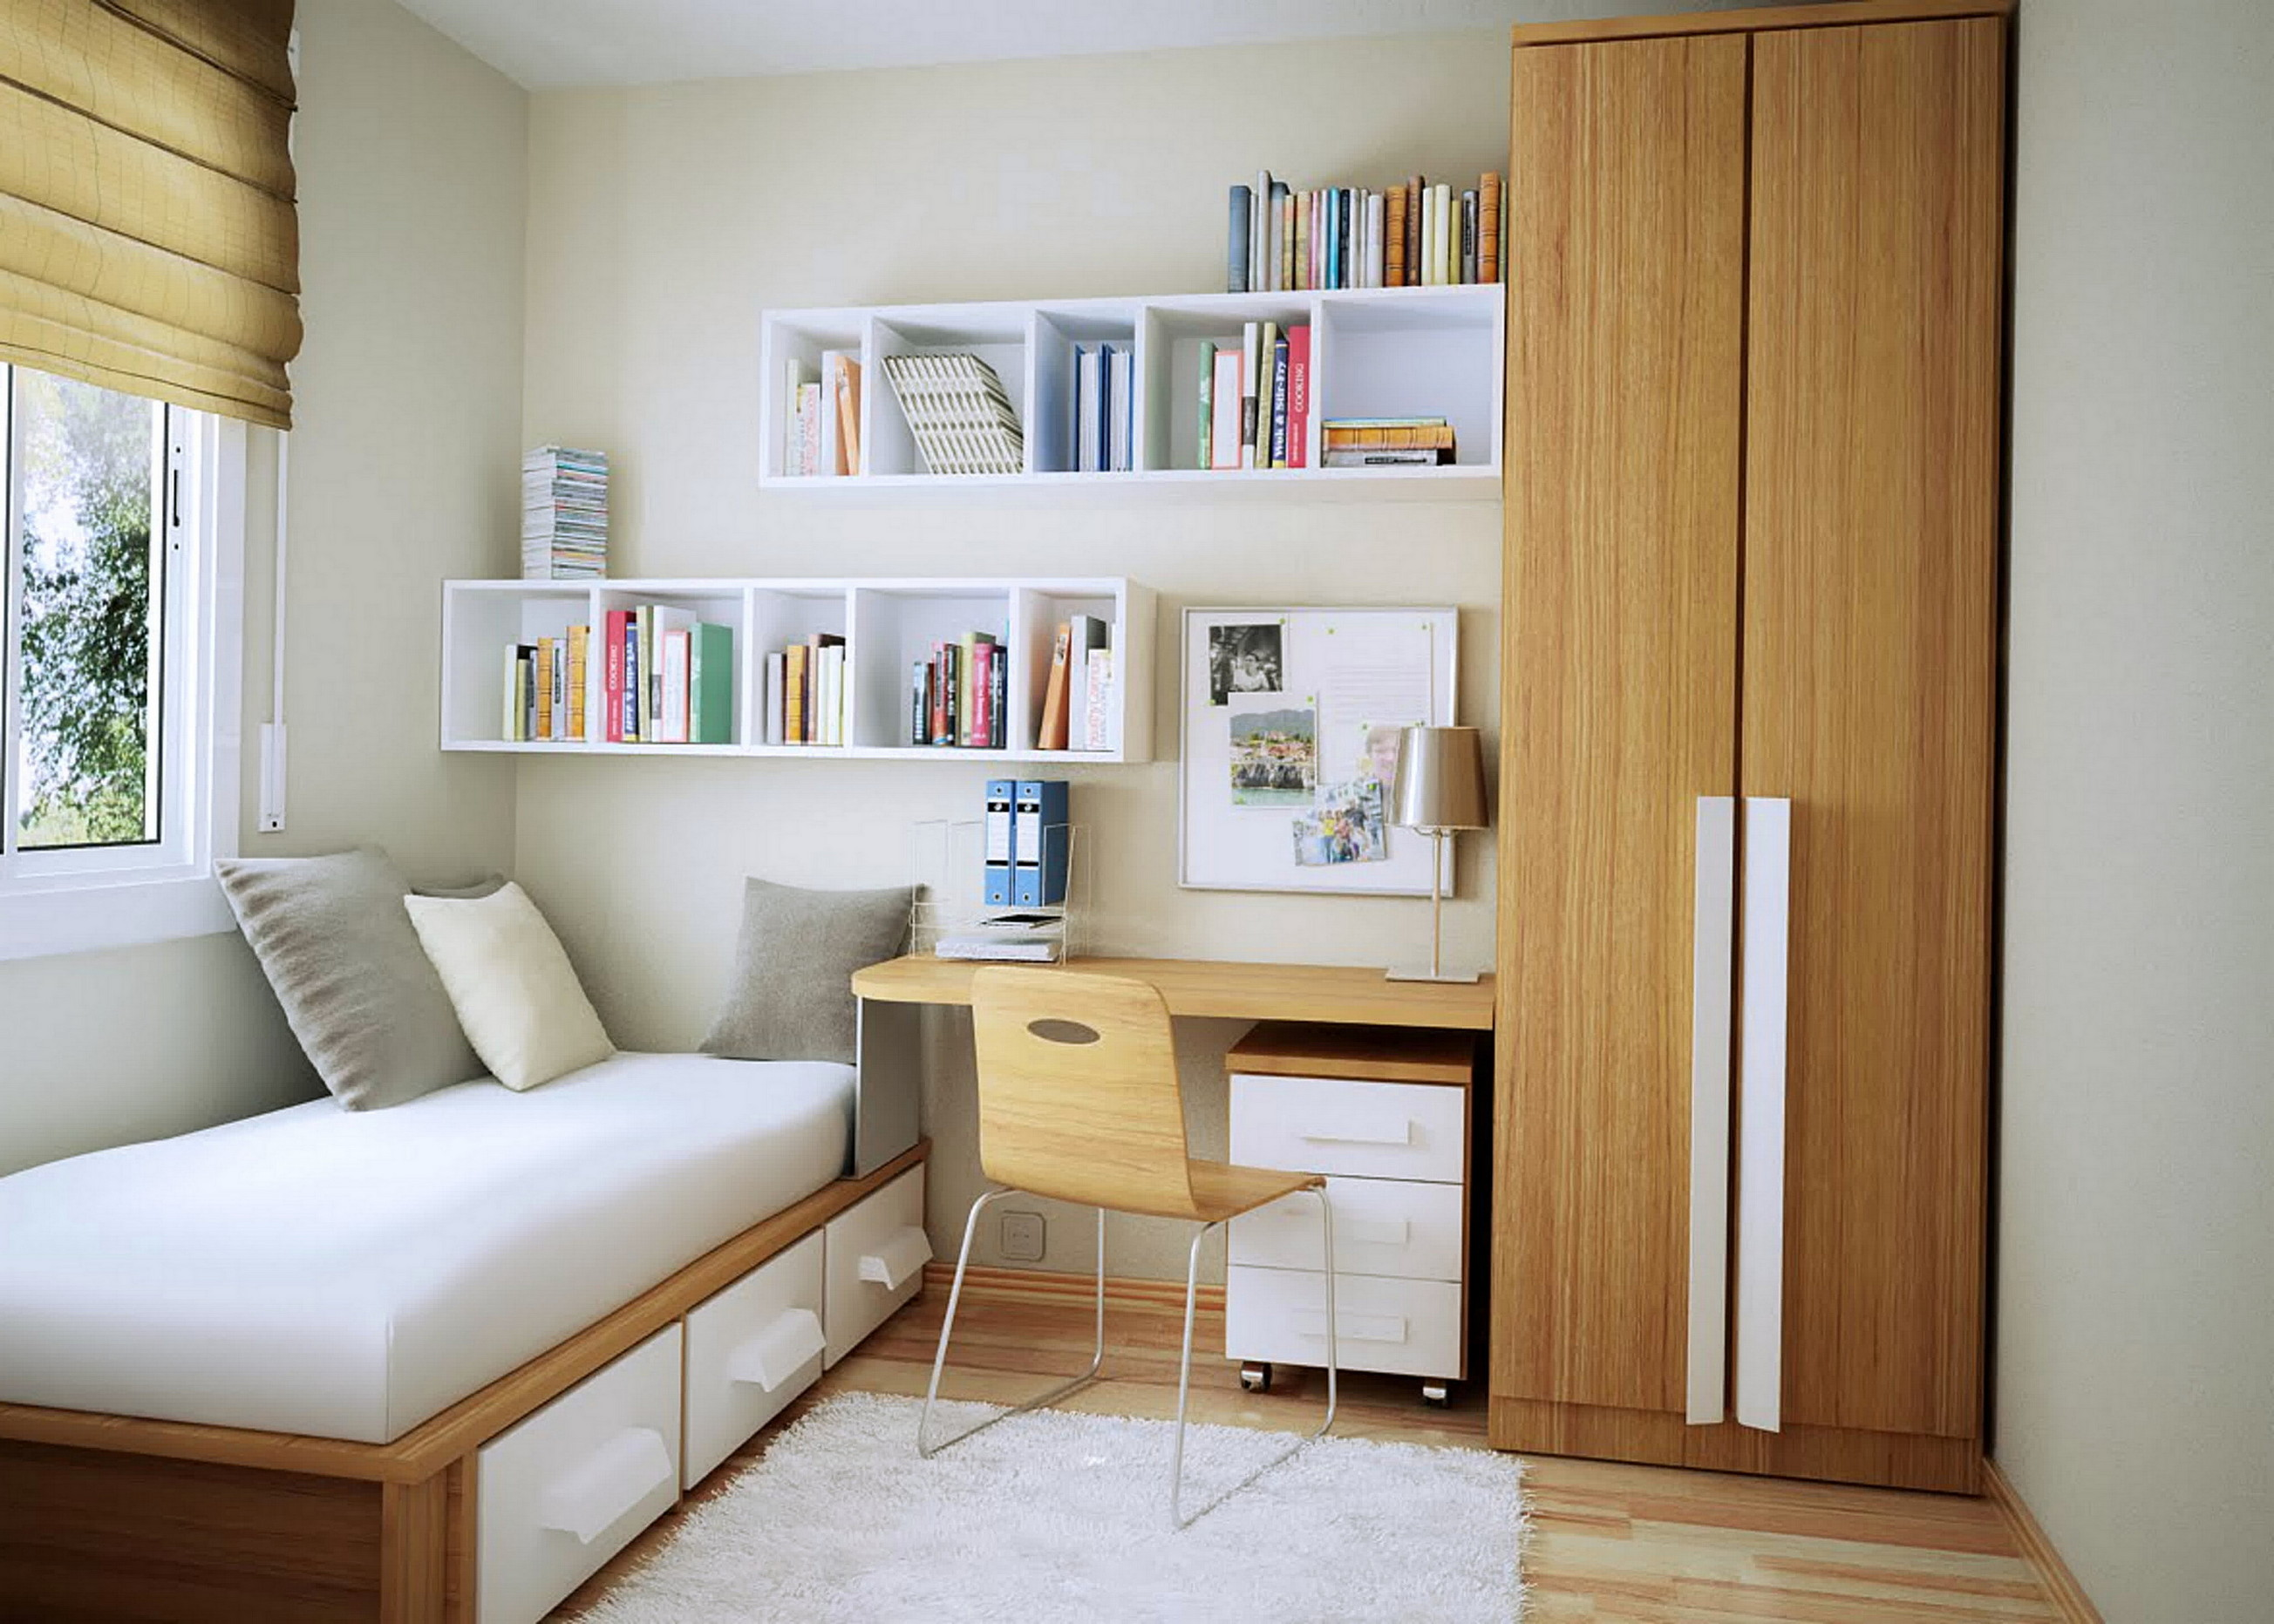 Simple Bedroom Ideas Small Spaces Top Ideas Architecturein